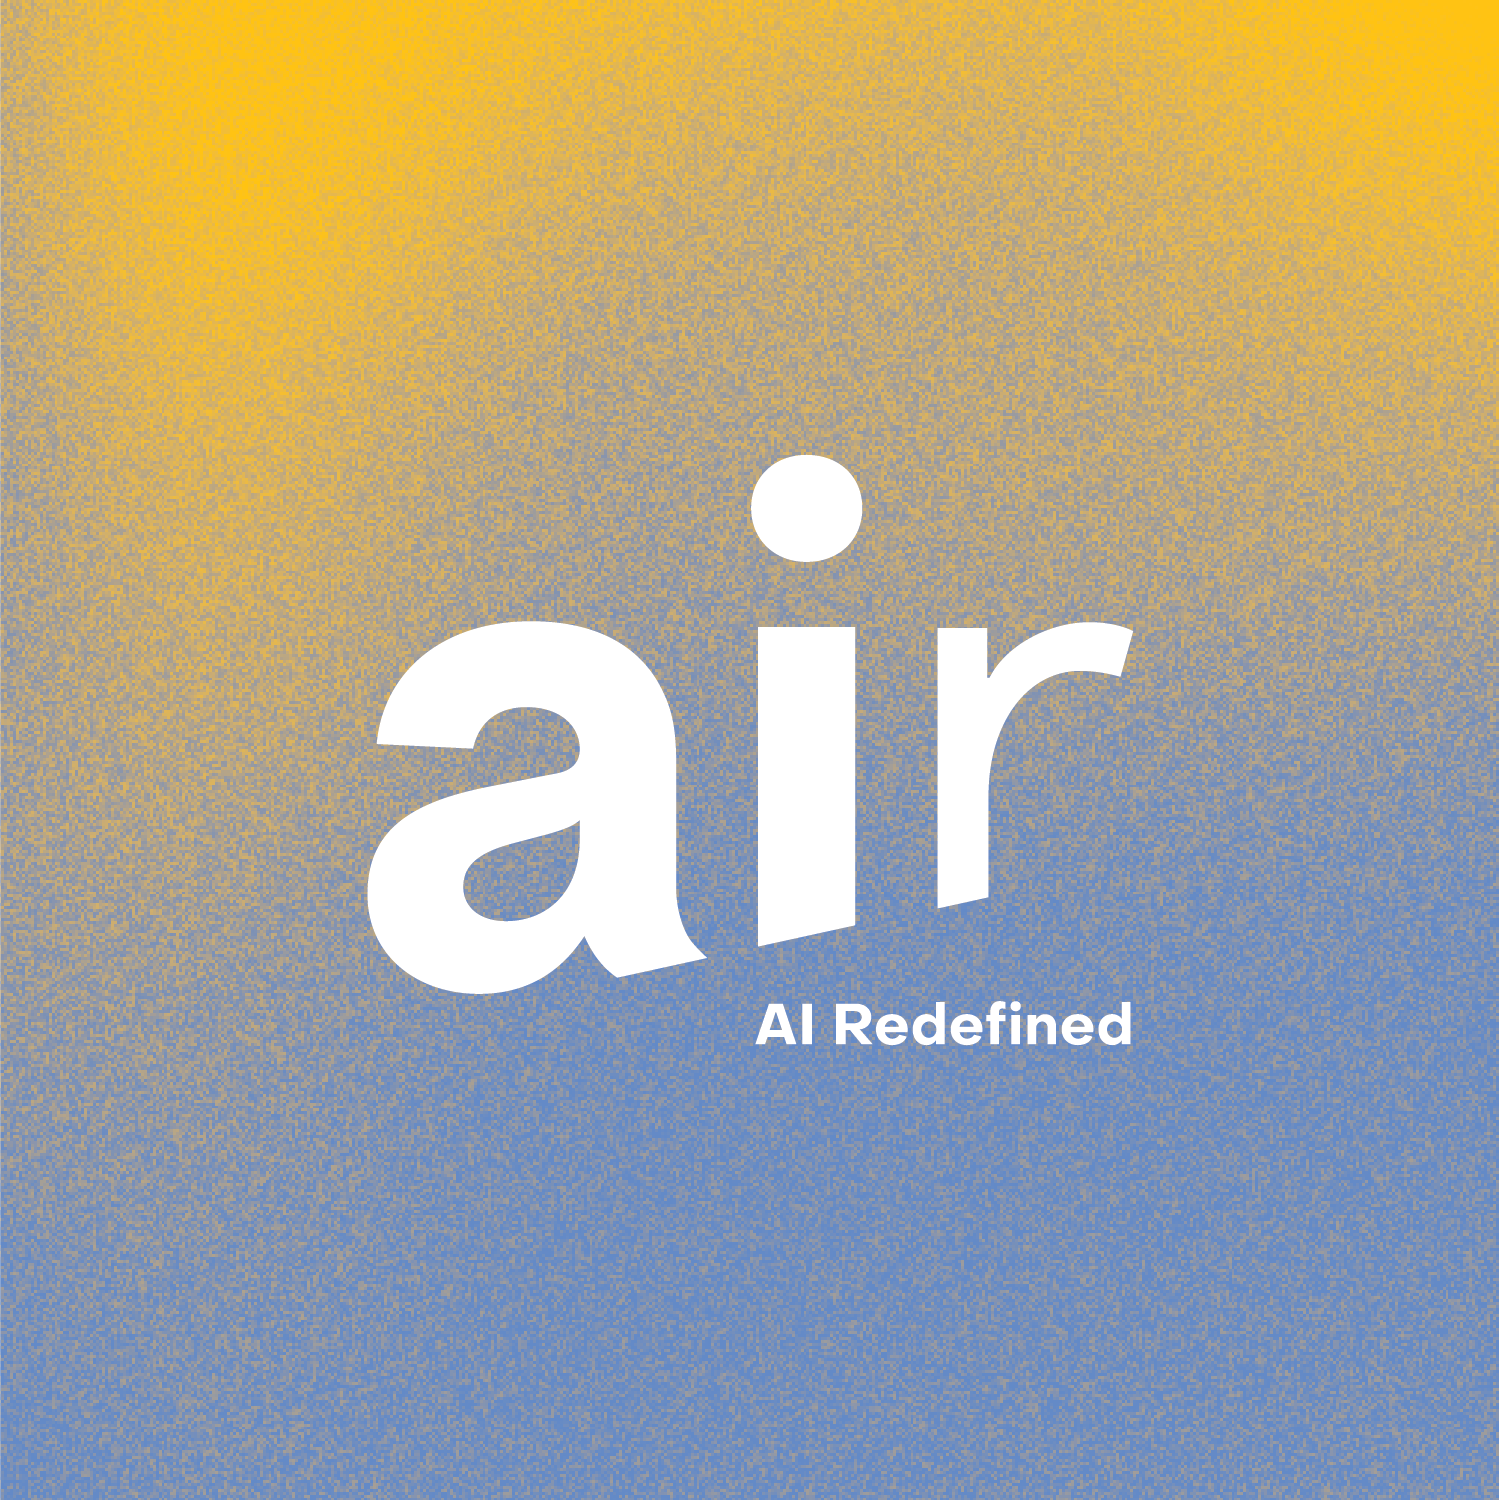 AIR (AI Redefined) icon